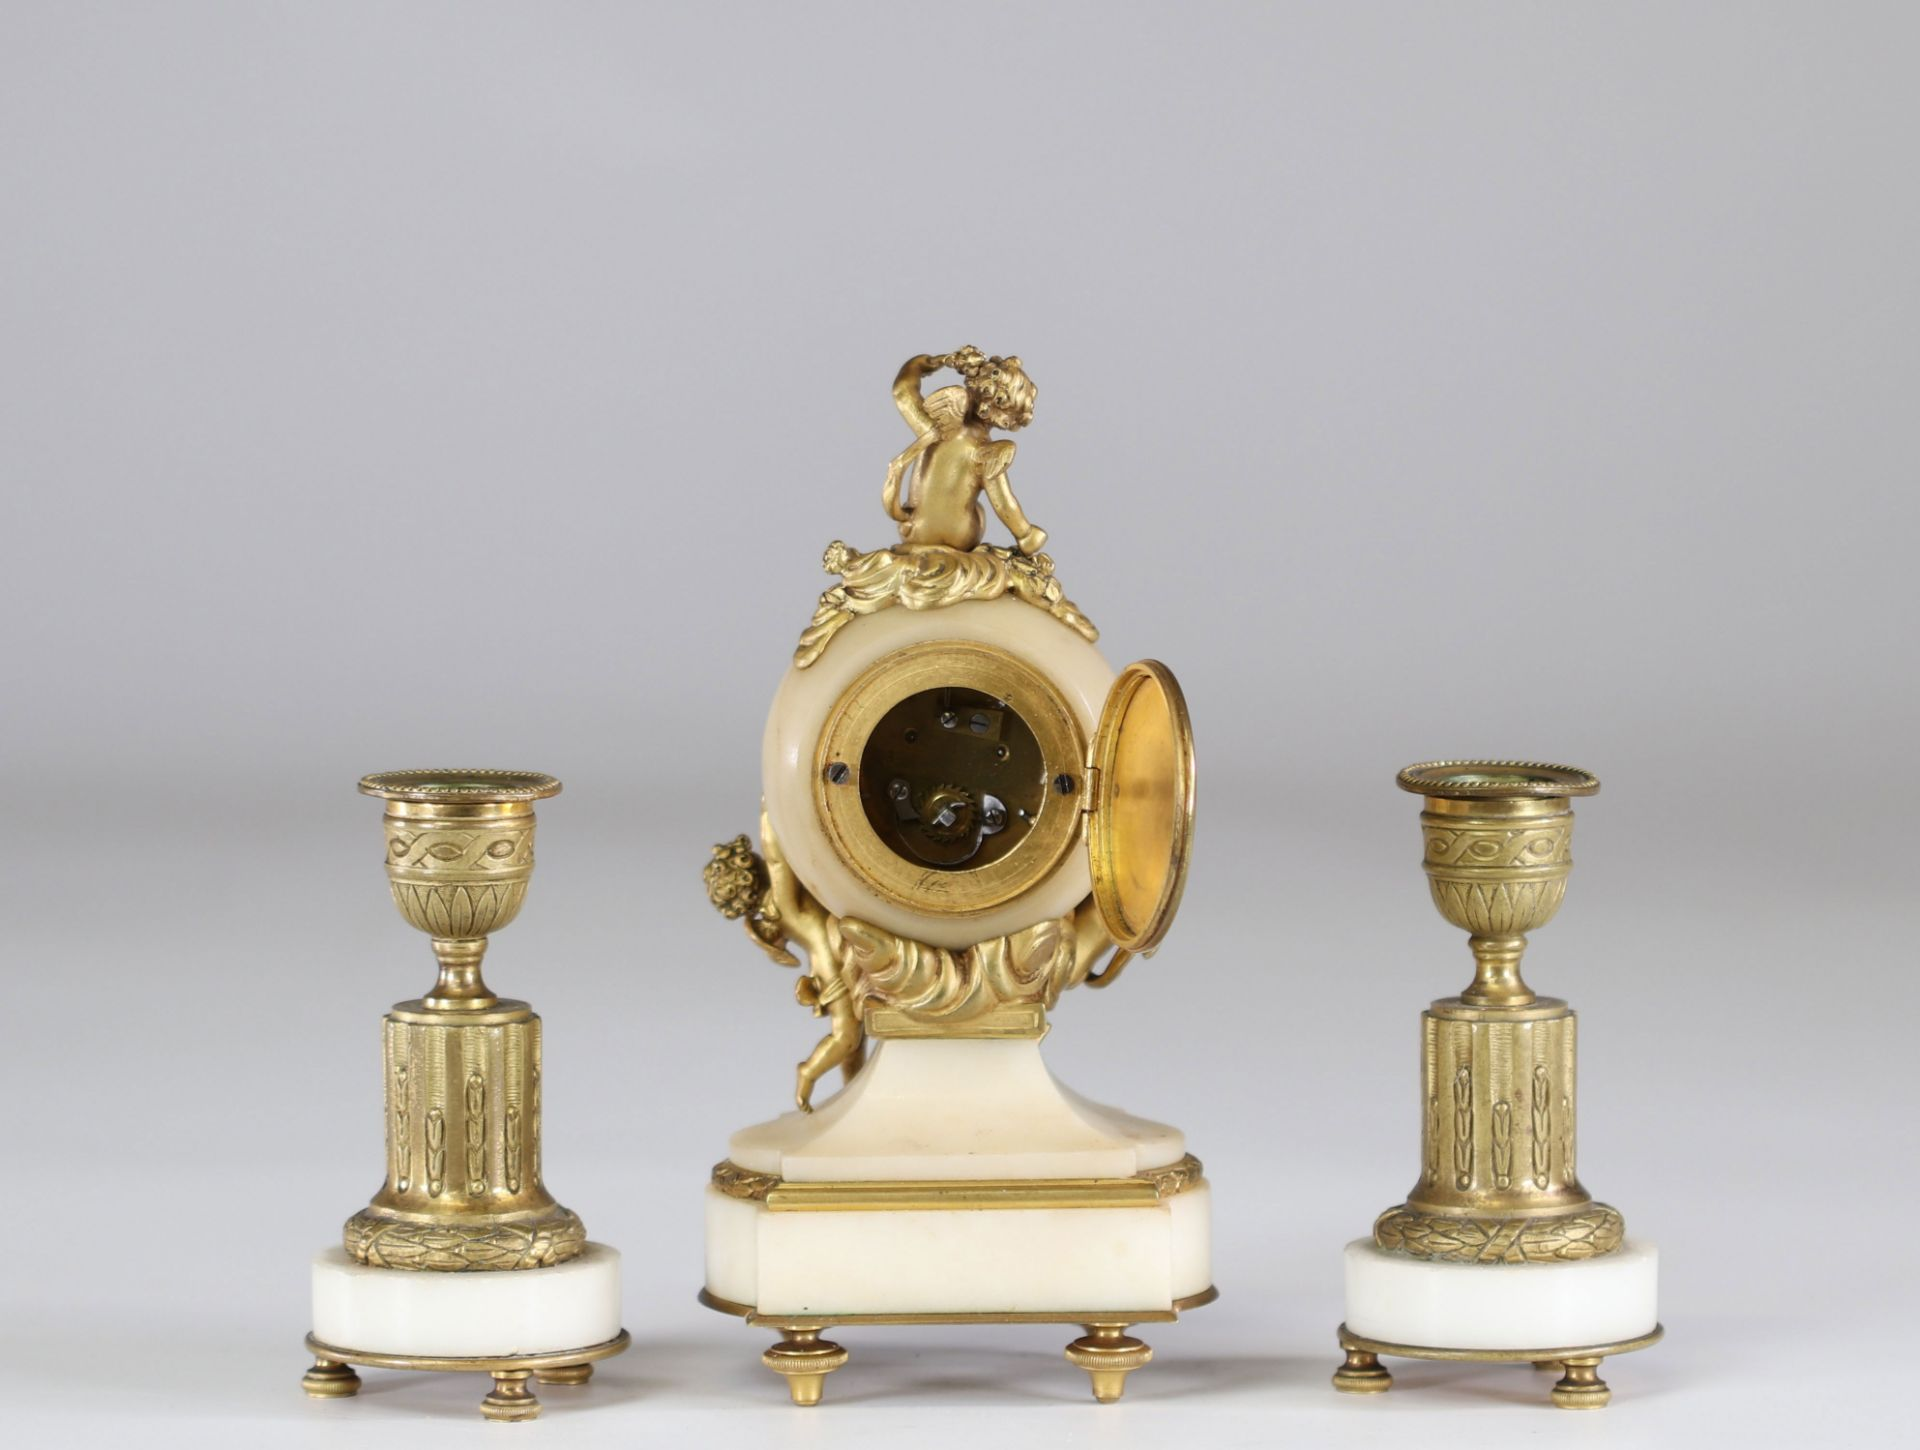 Louis XV style bronze and marble desk garniture and candlesticks - Image 2 of 2